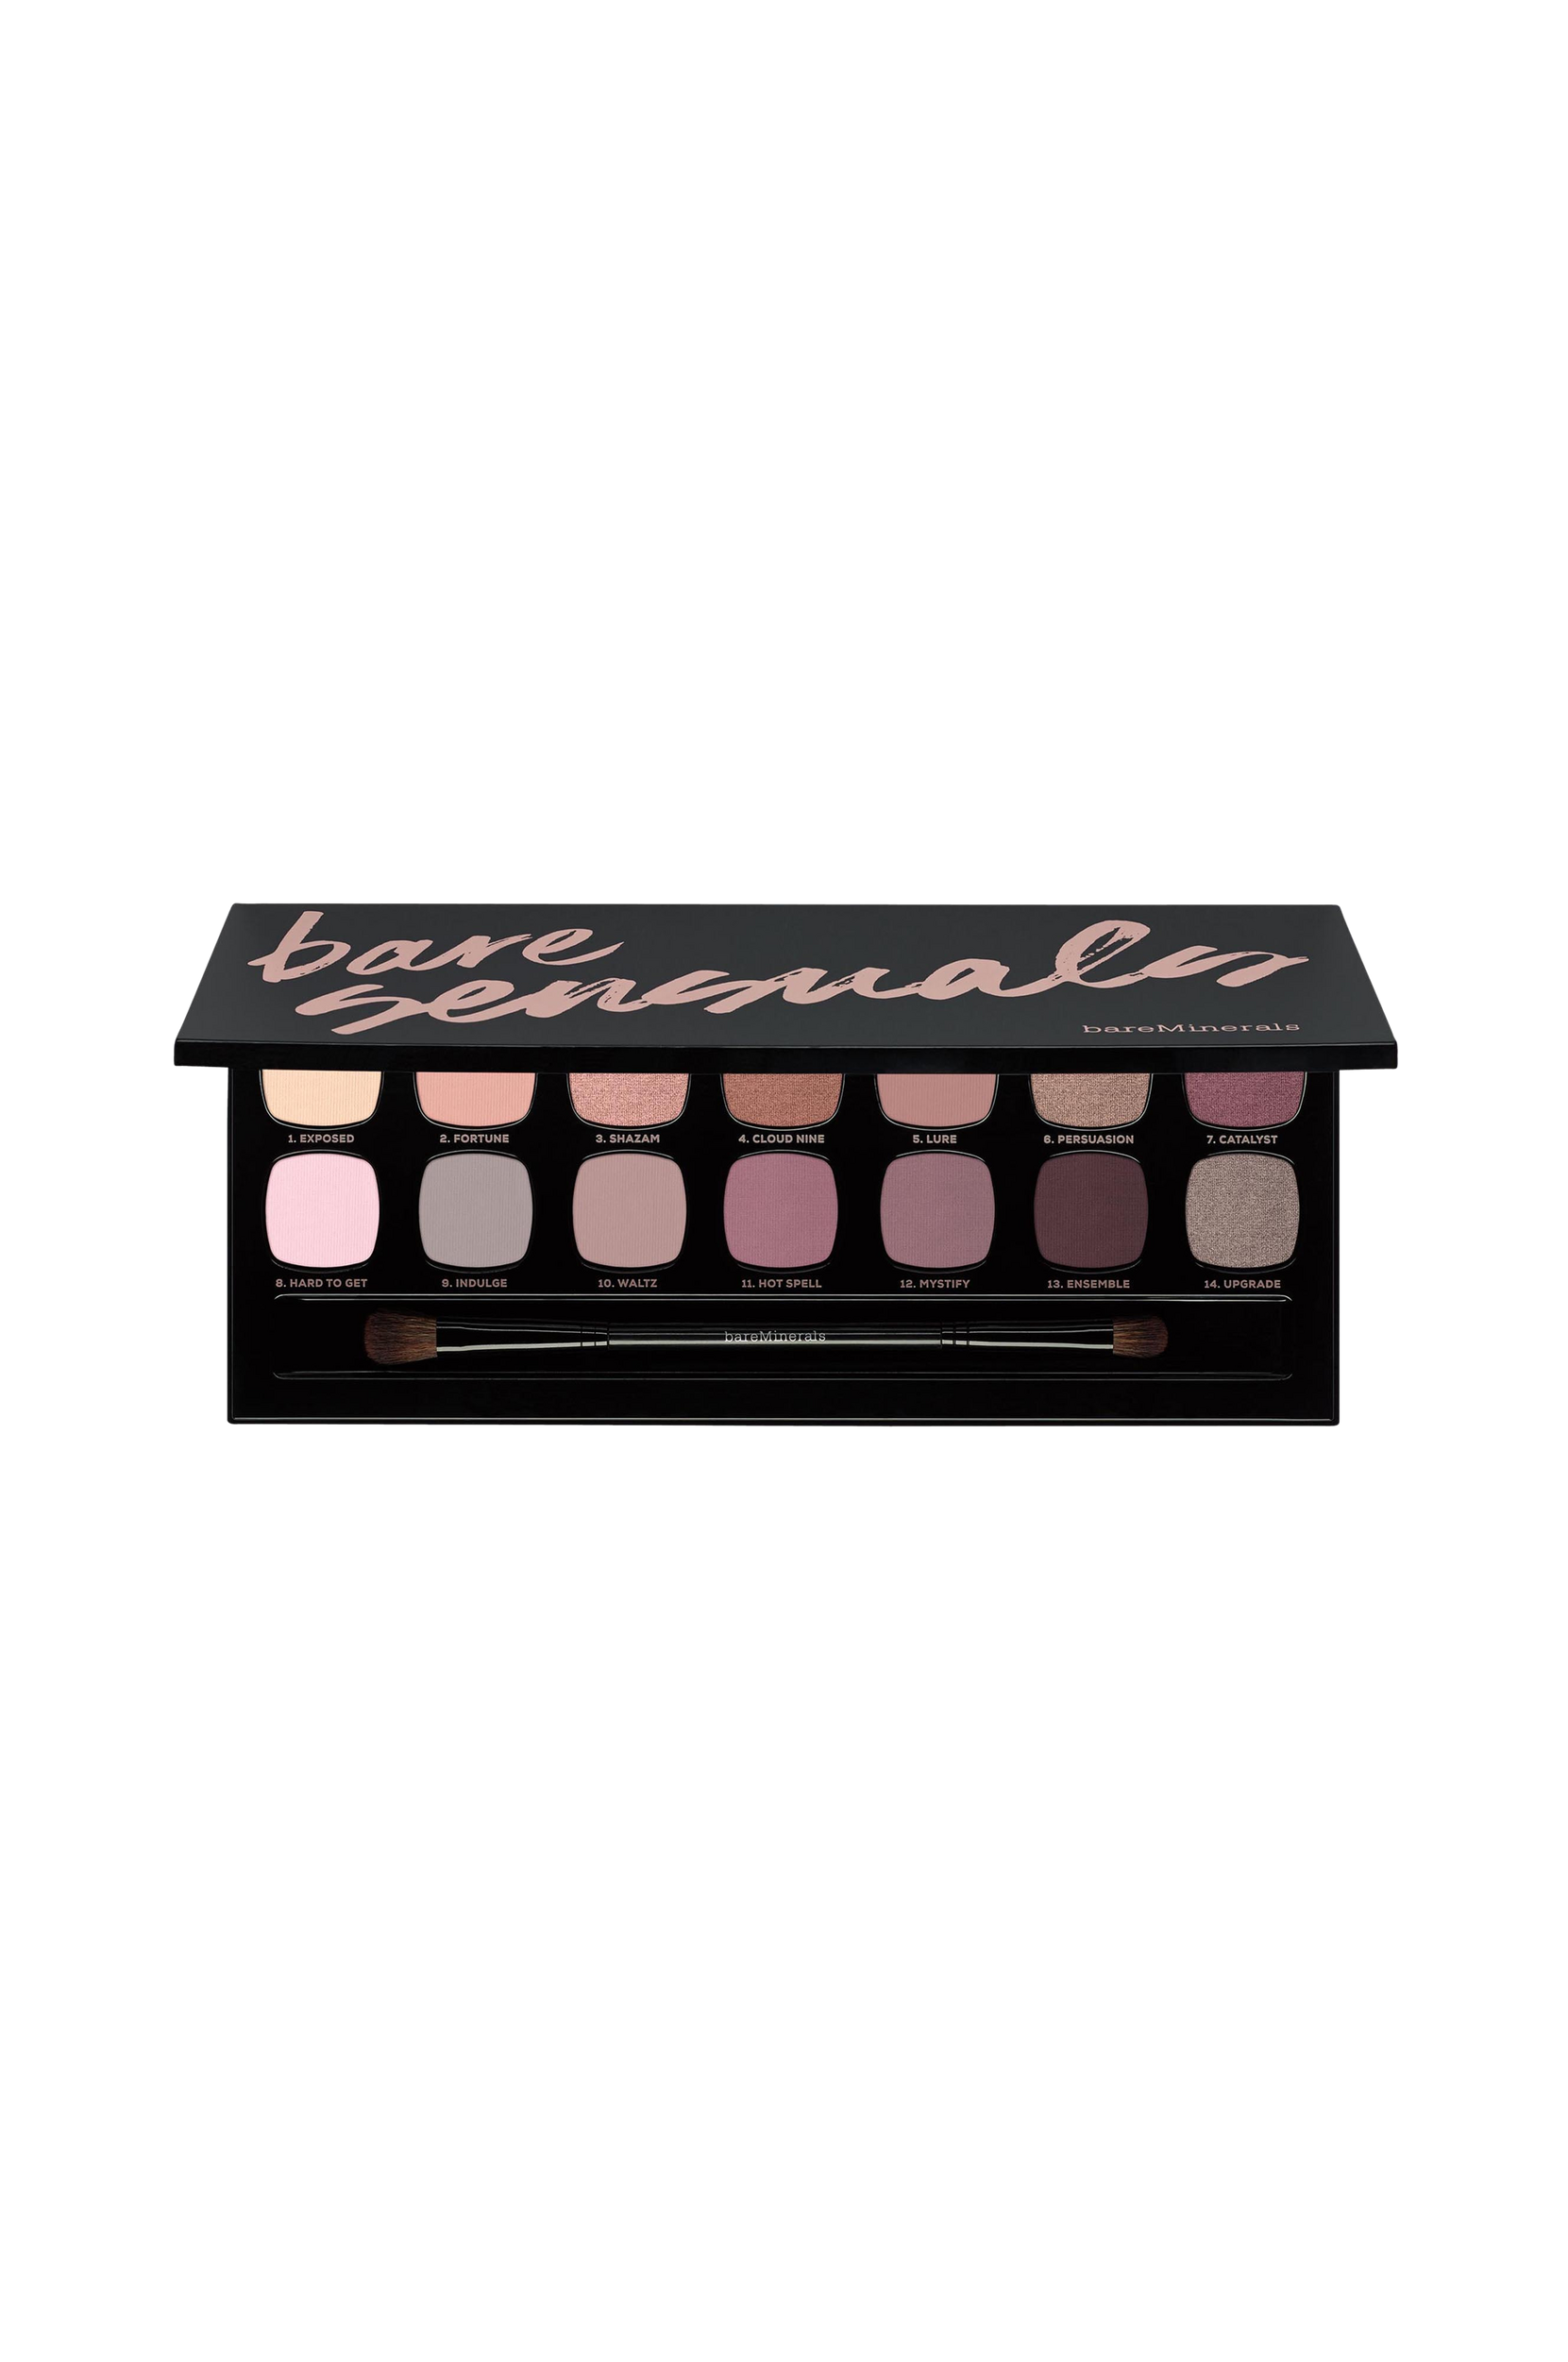 READY 14.0 Eyshadow Palette Bare Sensuals